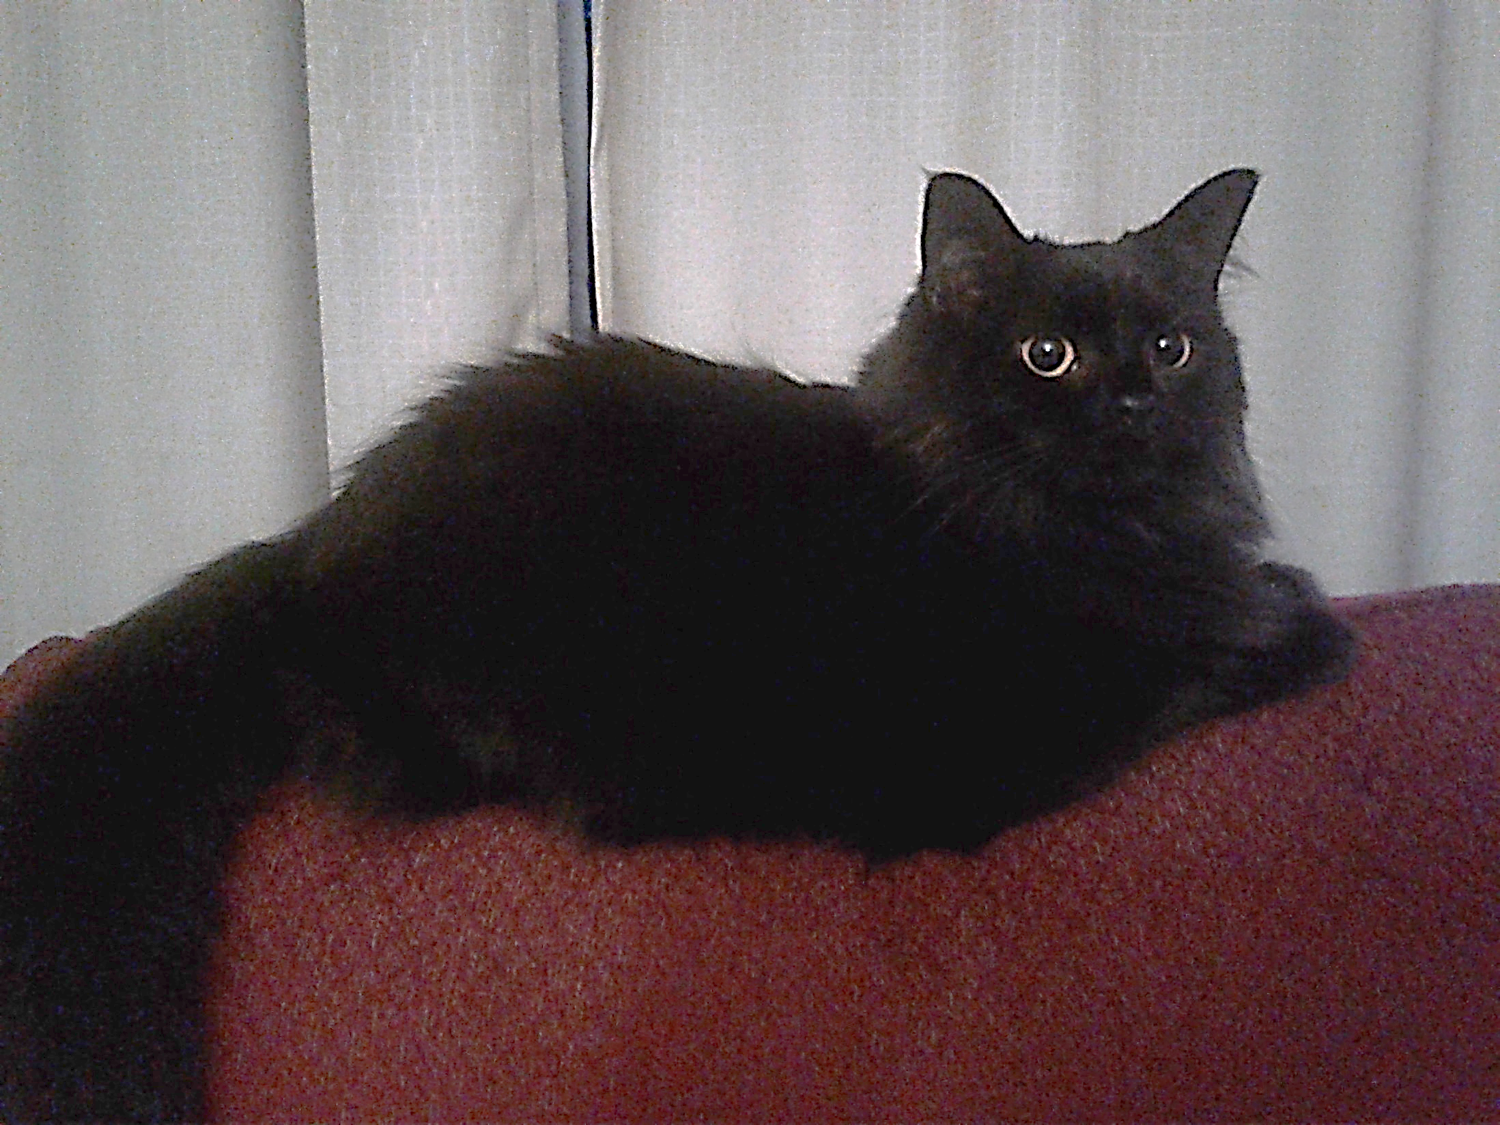 Murder Cat, pictured here on the back of the writing chair,serves double duty as judgmental cat. This is her being judgmental.